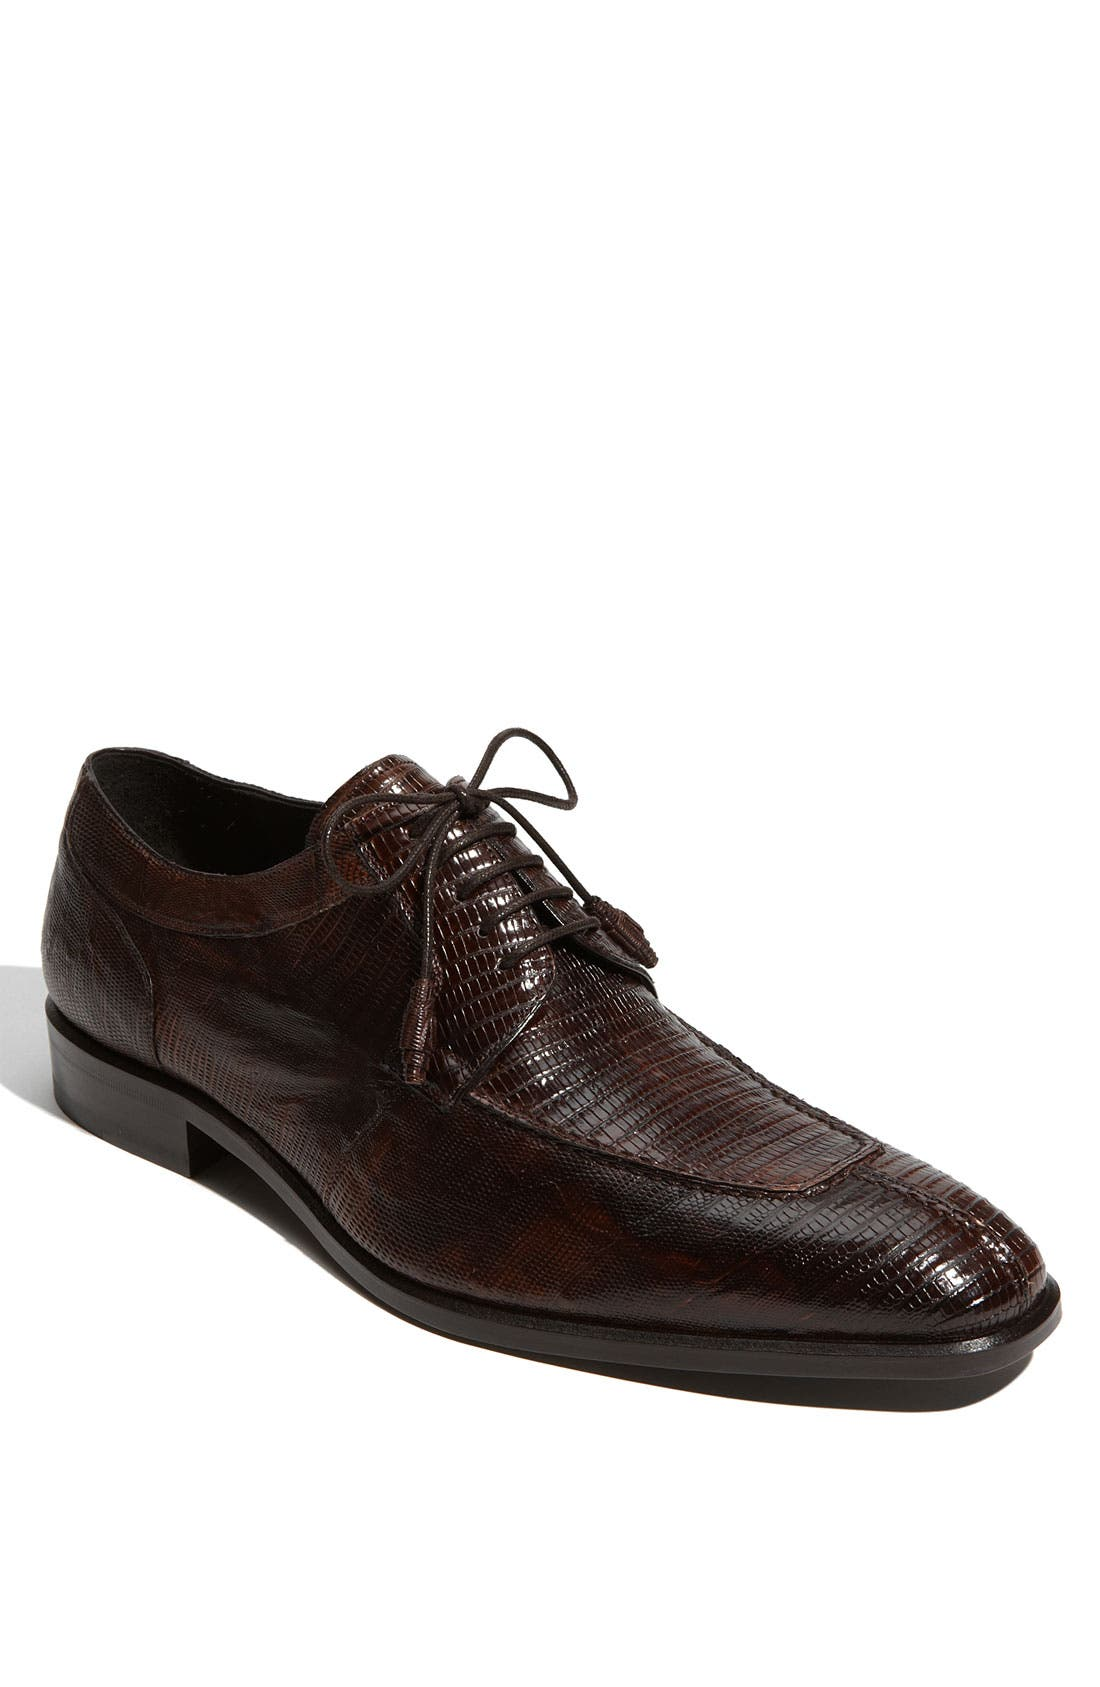 Alternate Image 1 Selected - Mezlan 'Barolo' Apron Toe Oxford